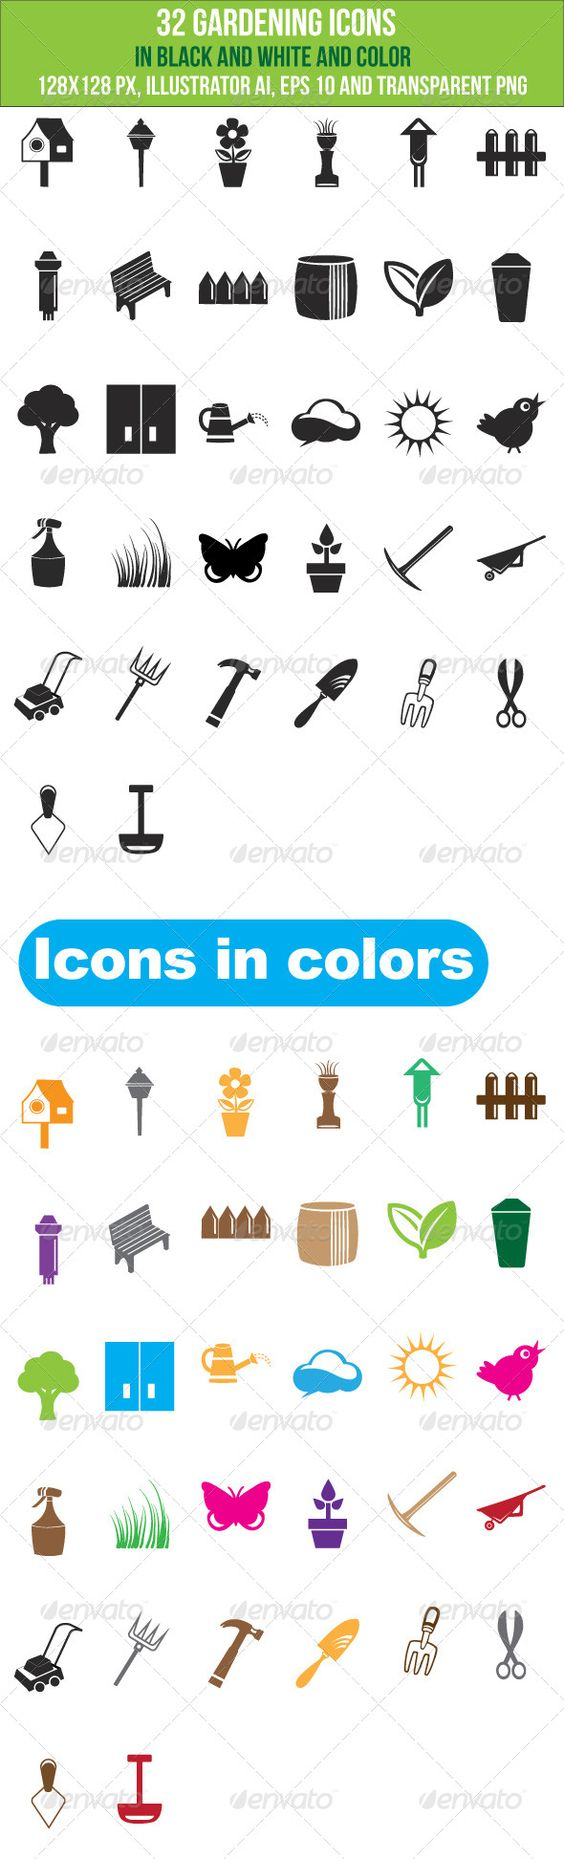 32 Gardening Icons  #GraphicRiver         These 32 gardening icons are good for web, print, info graphics and mobile applications. Icons are both in b&w and colors. You can change the color, size as per your needs. Icon size: 128×128 pixels Files: Illustrator ai, eps 10 and transparent png files are included for both colors and black and white.      Created: 23August13 GraphicsFilesIncluded: TransparentPNG #VectorEPS #AIIllustrator HighResolution: No Layered: Yes MinimumAdobeCSVersion: CS…